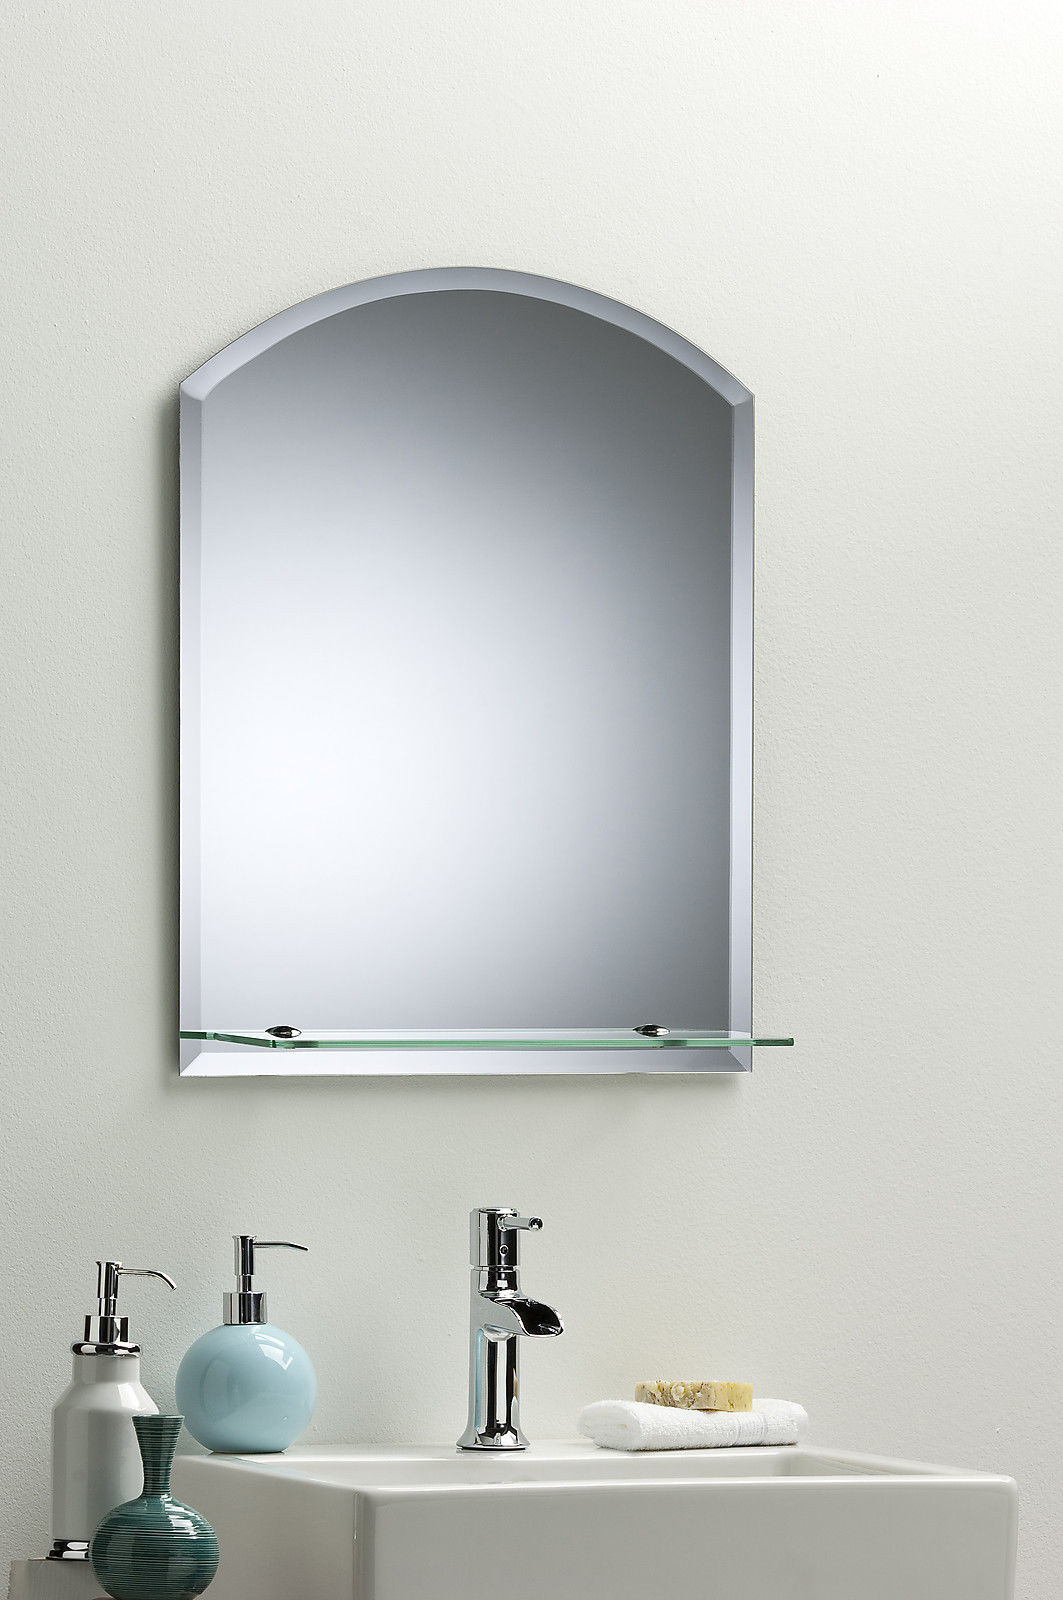 Bathroom Wall Mirror Modern Stylish Arch With Shelf And Bevel Frameless Plain Ebay